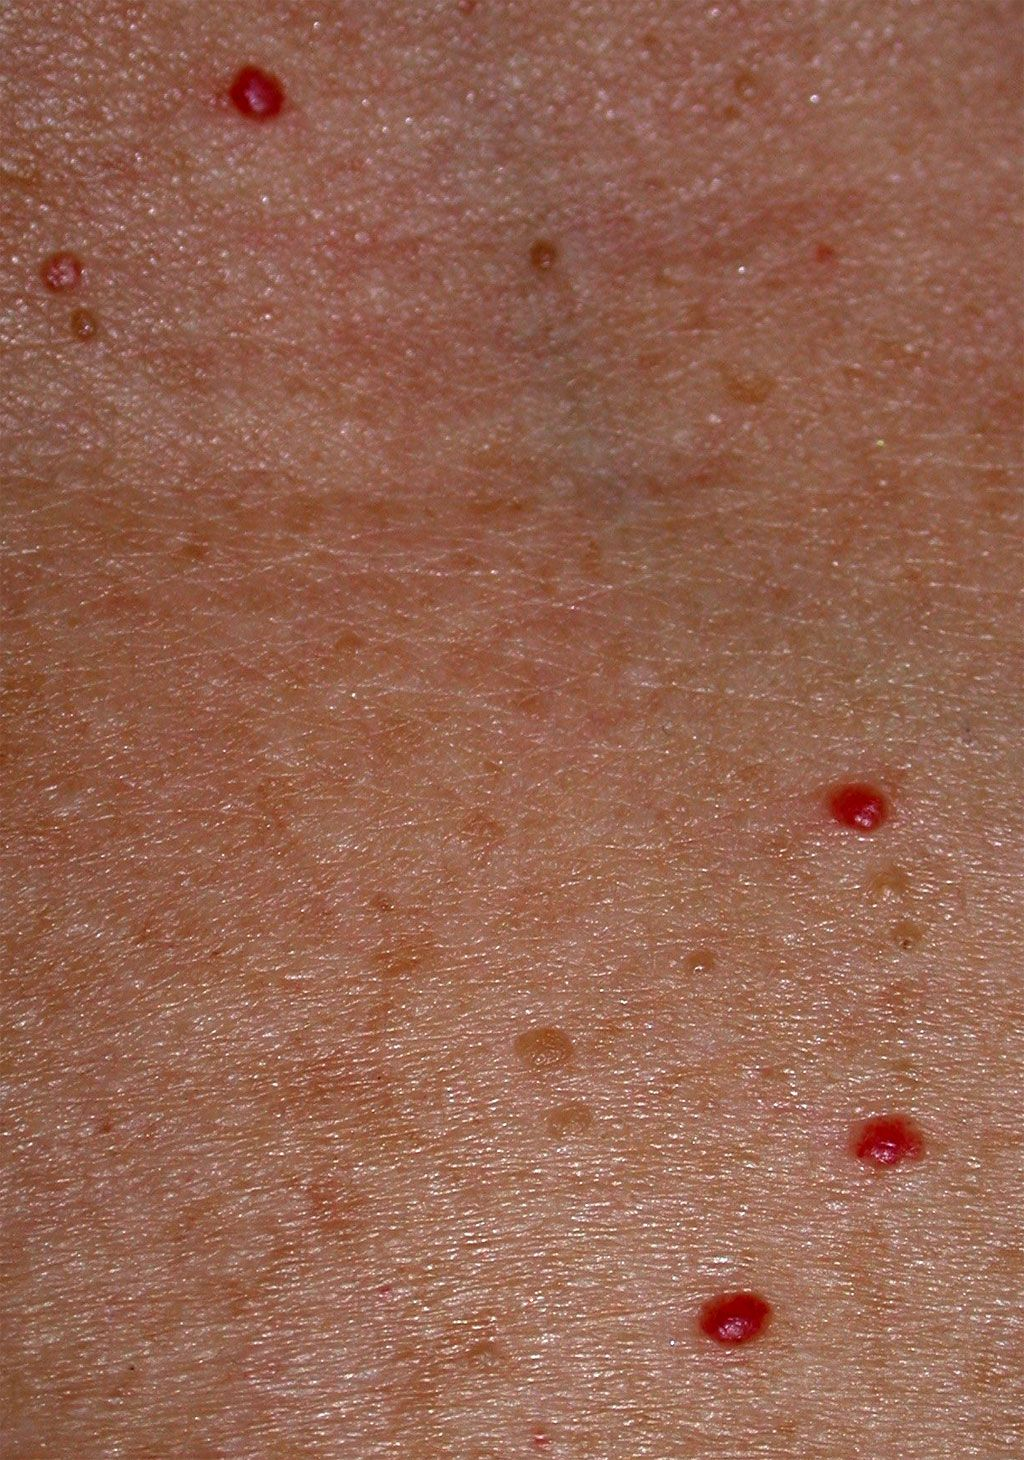 Cherry Angiomas Associated with Bromine Toxicity and Iodine